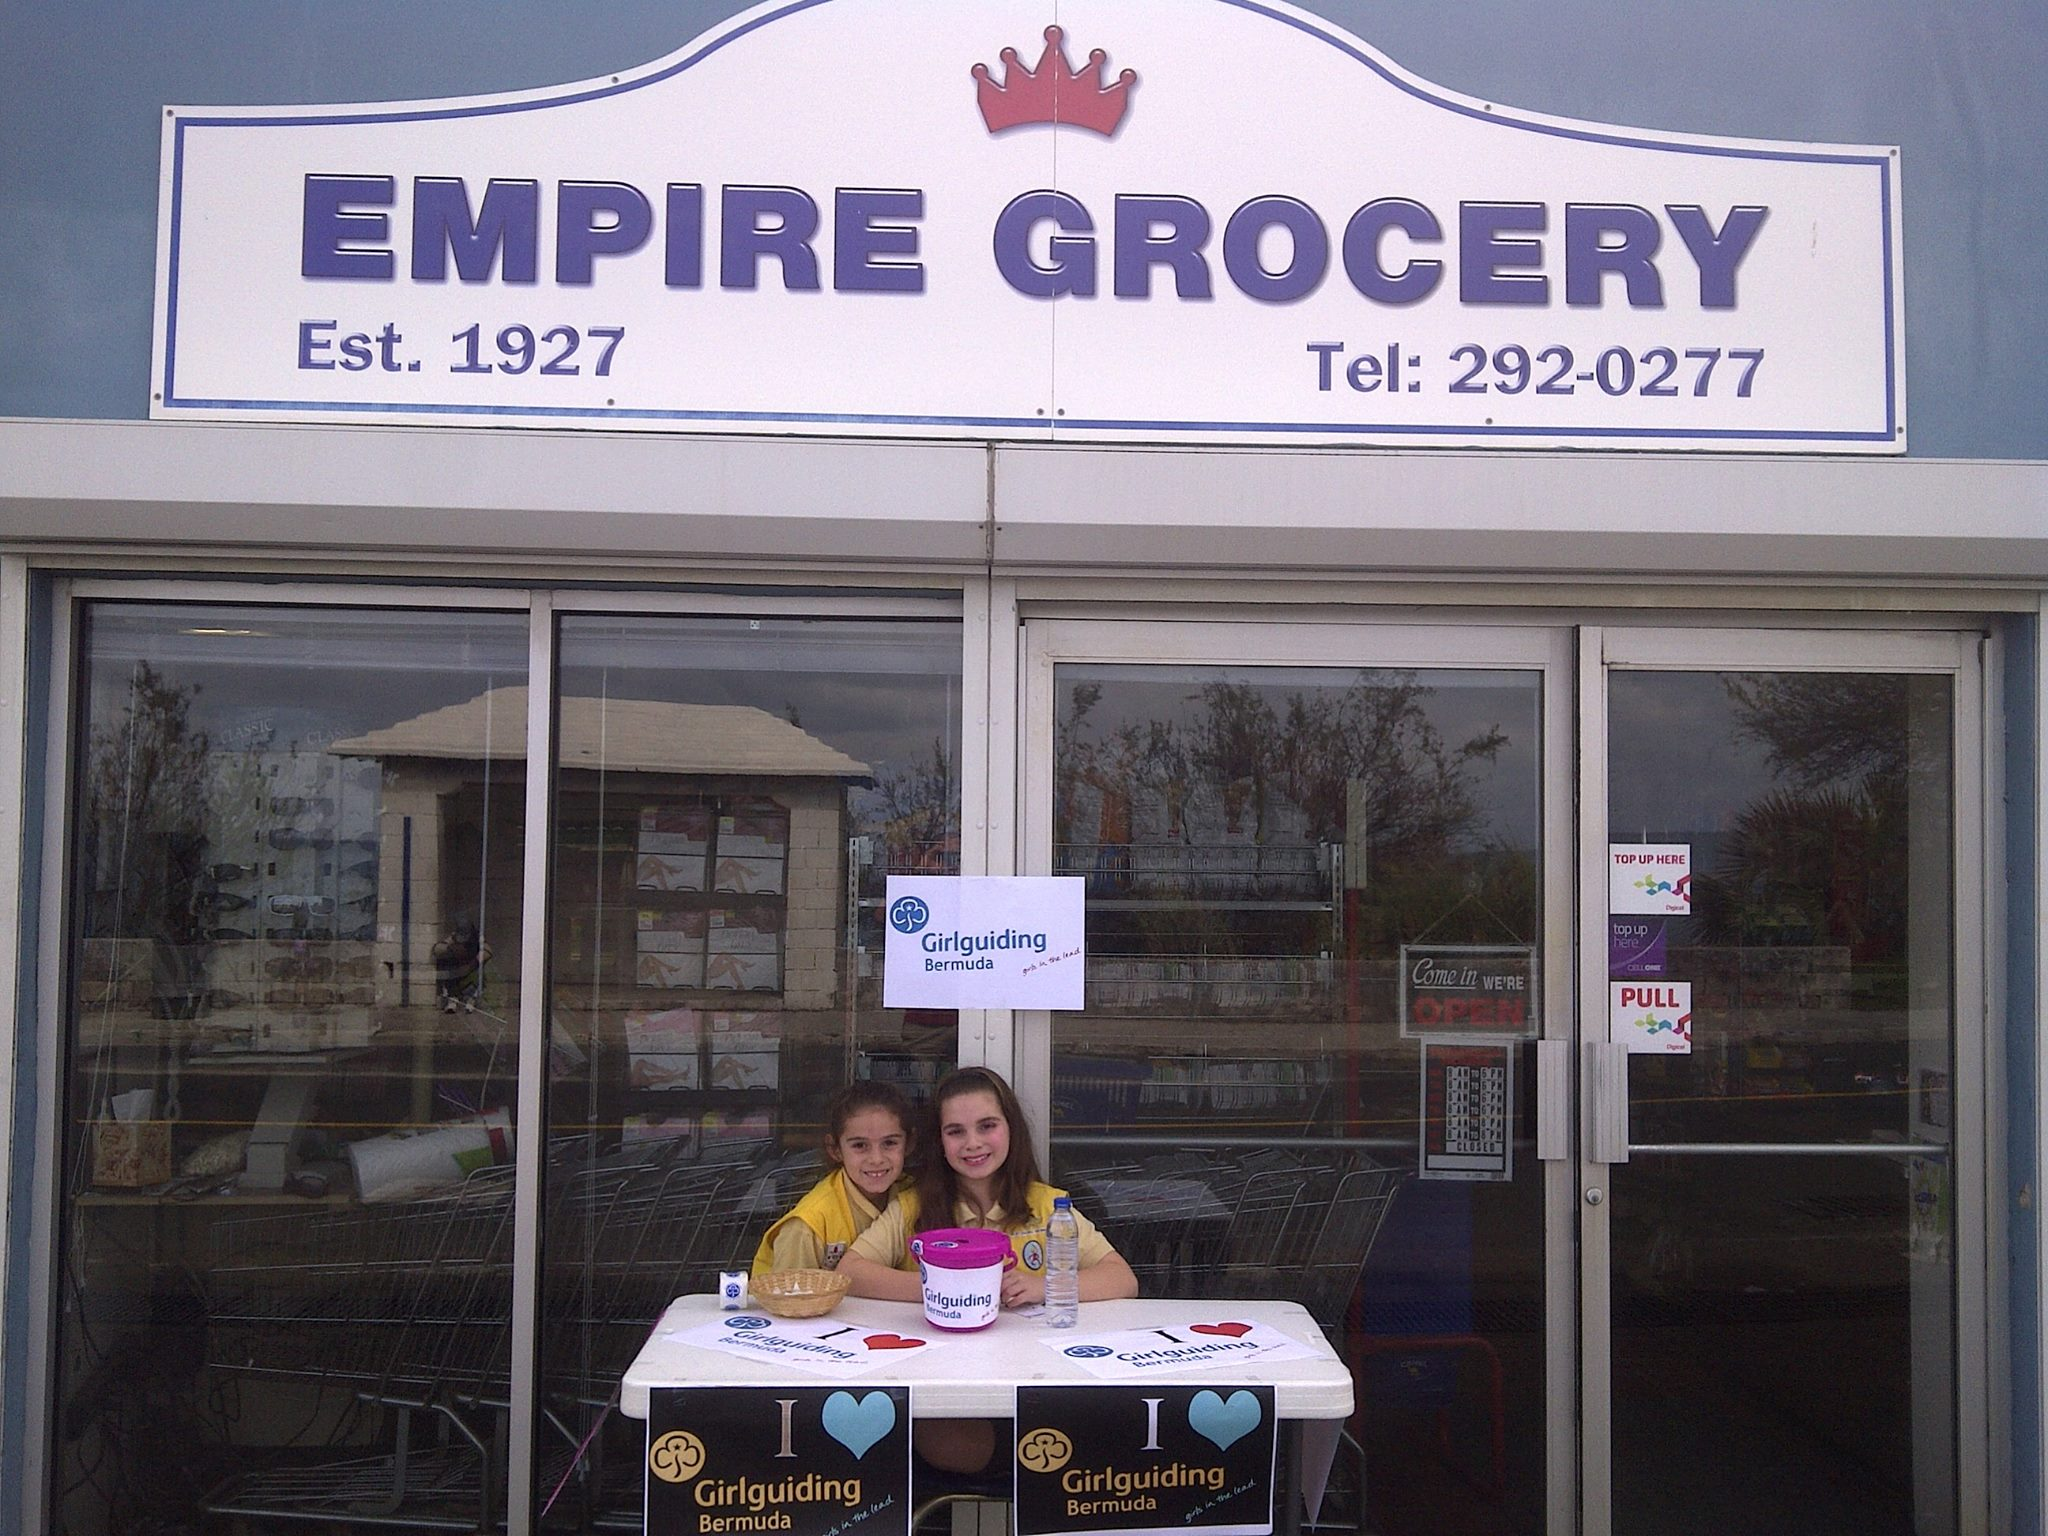 Empire Grocery